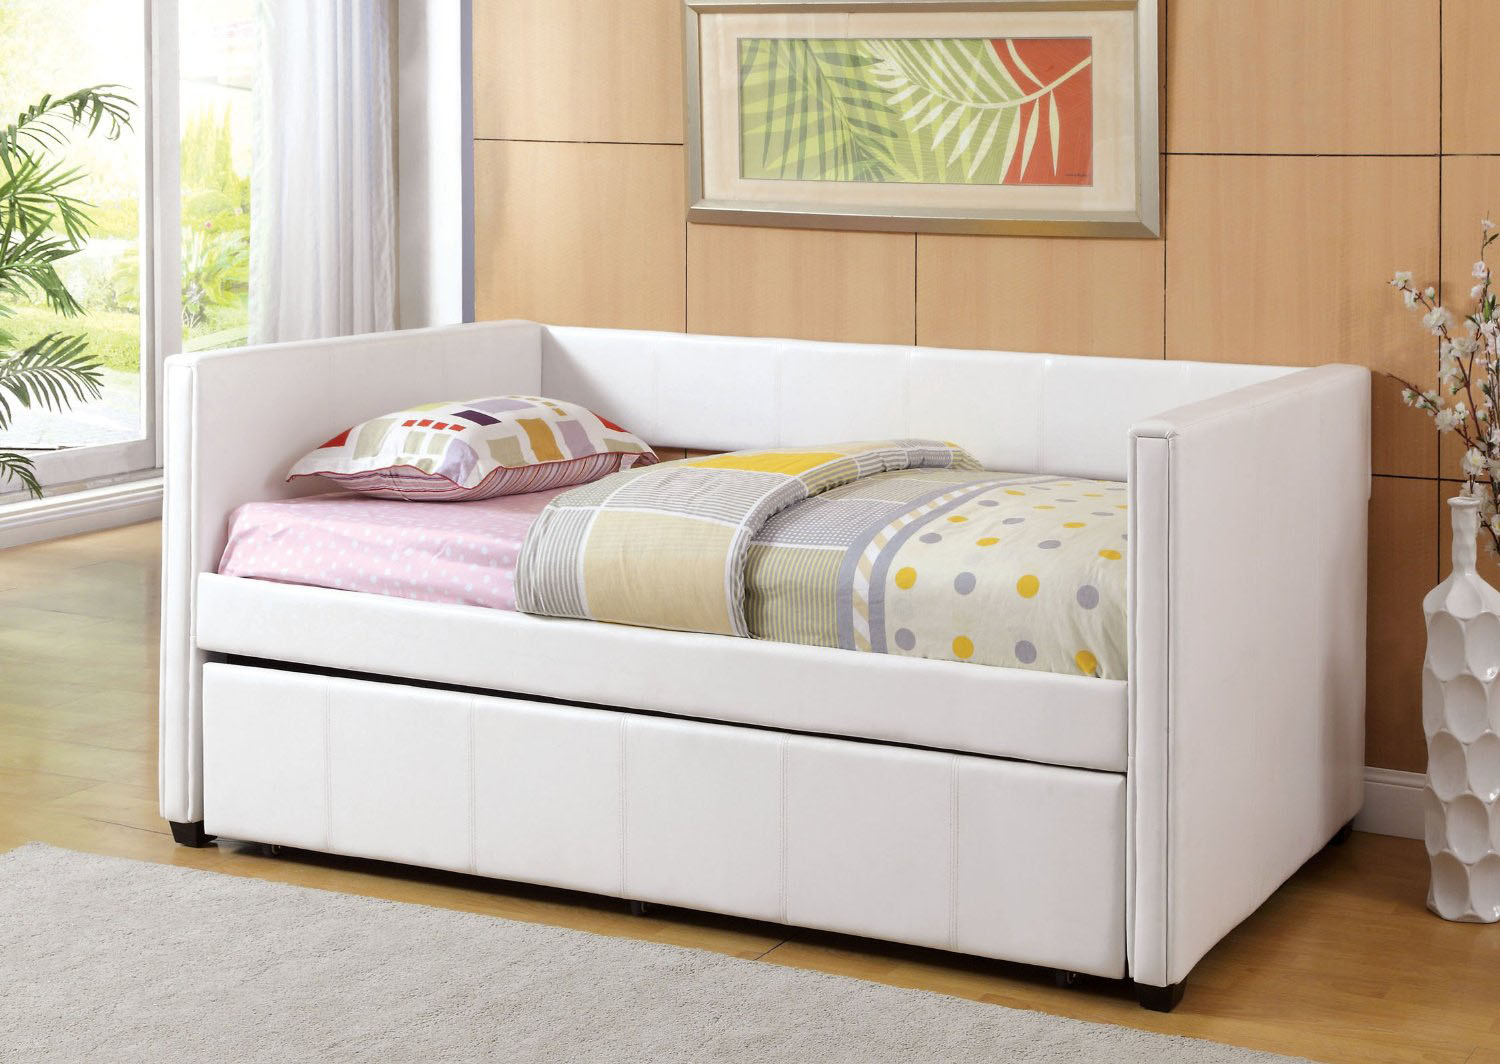 Image of: modern daybeds with trundle